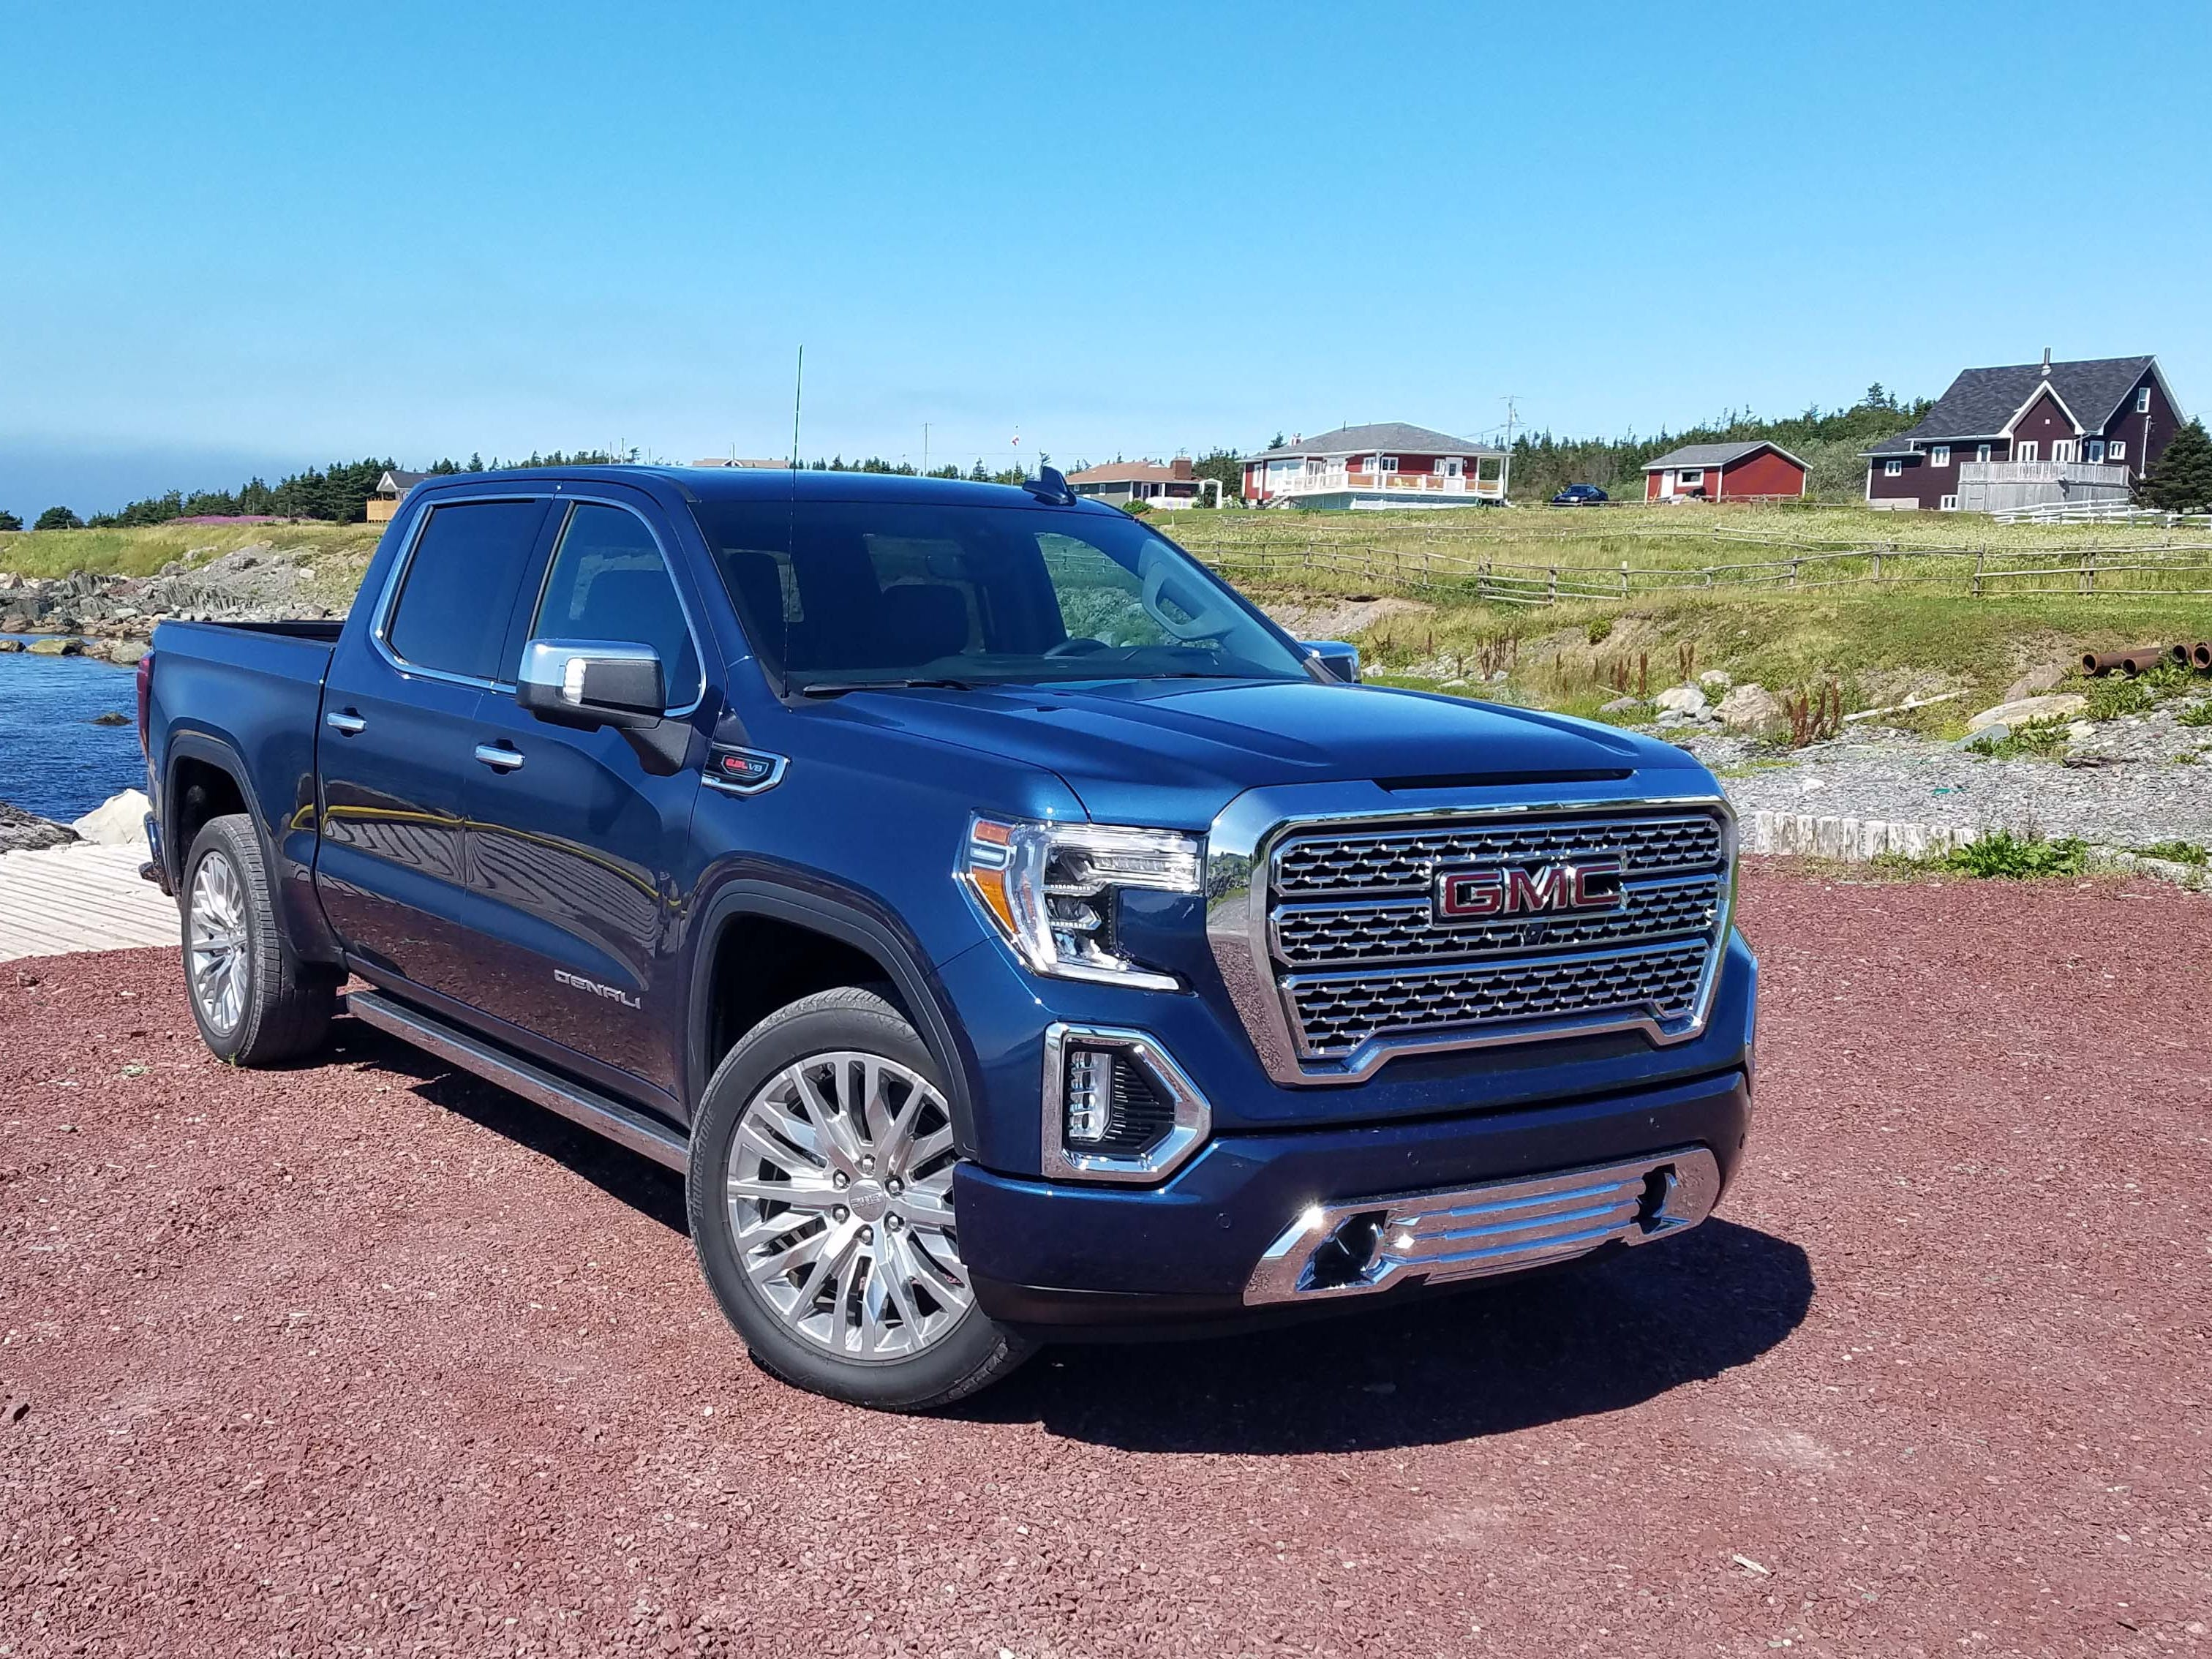 New for 2019, the GMC Sierra Denali starts at $59,495. Its chrome and c-shaped headlghts are classic GMC, but the big truck gets unique features as well over its more working-class Chevy Silverado stablemate.